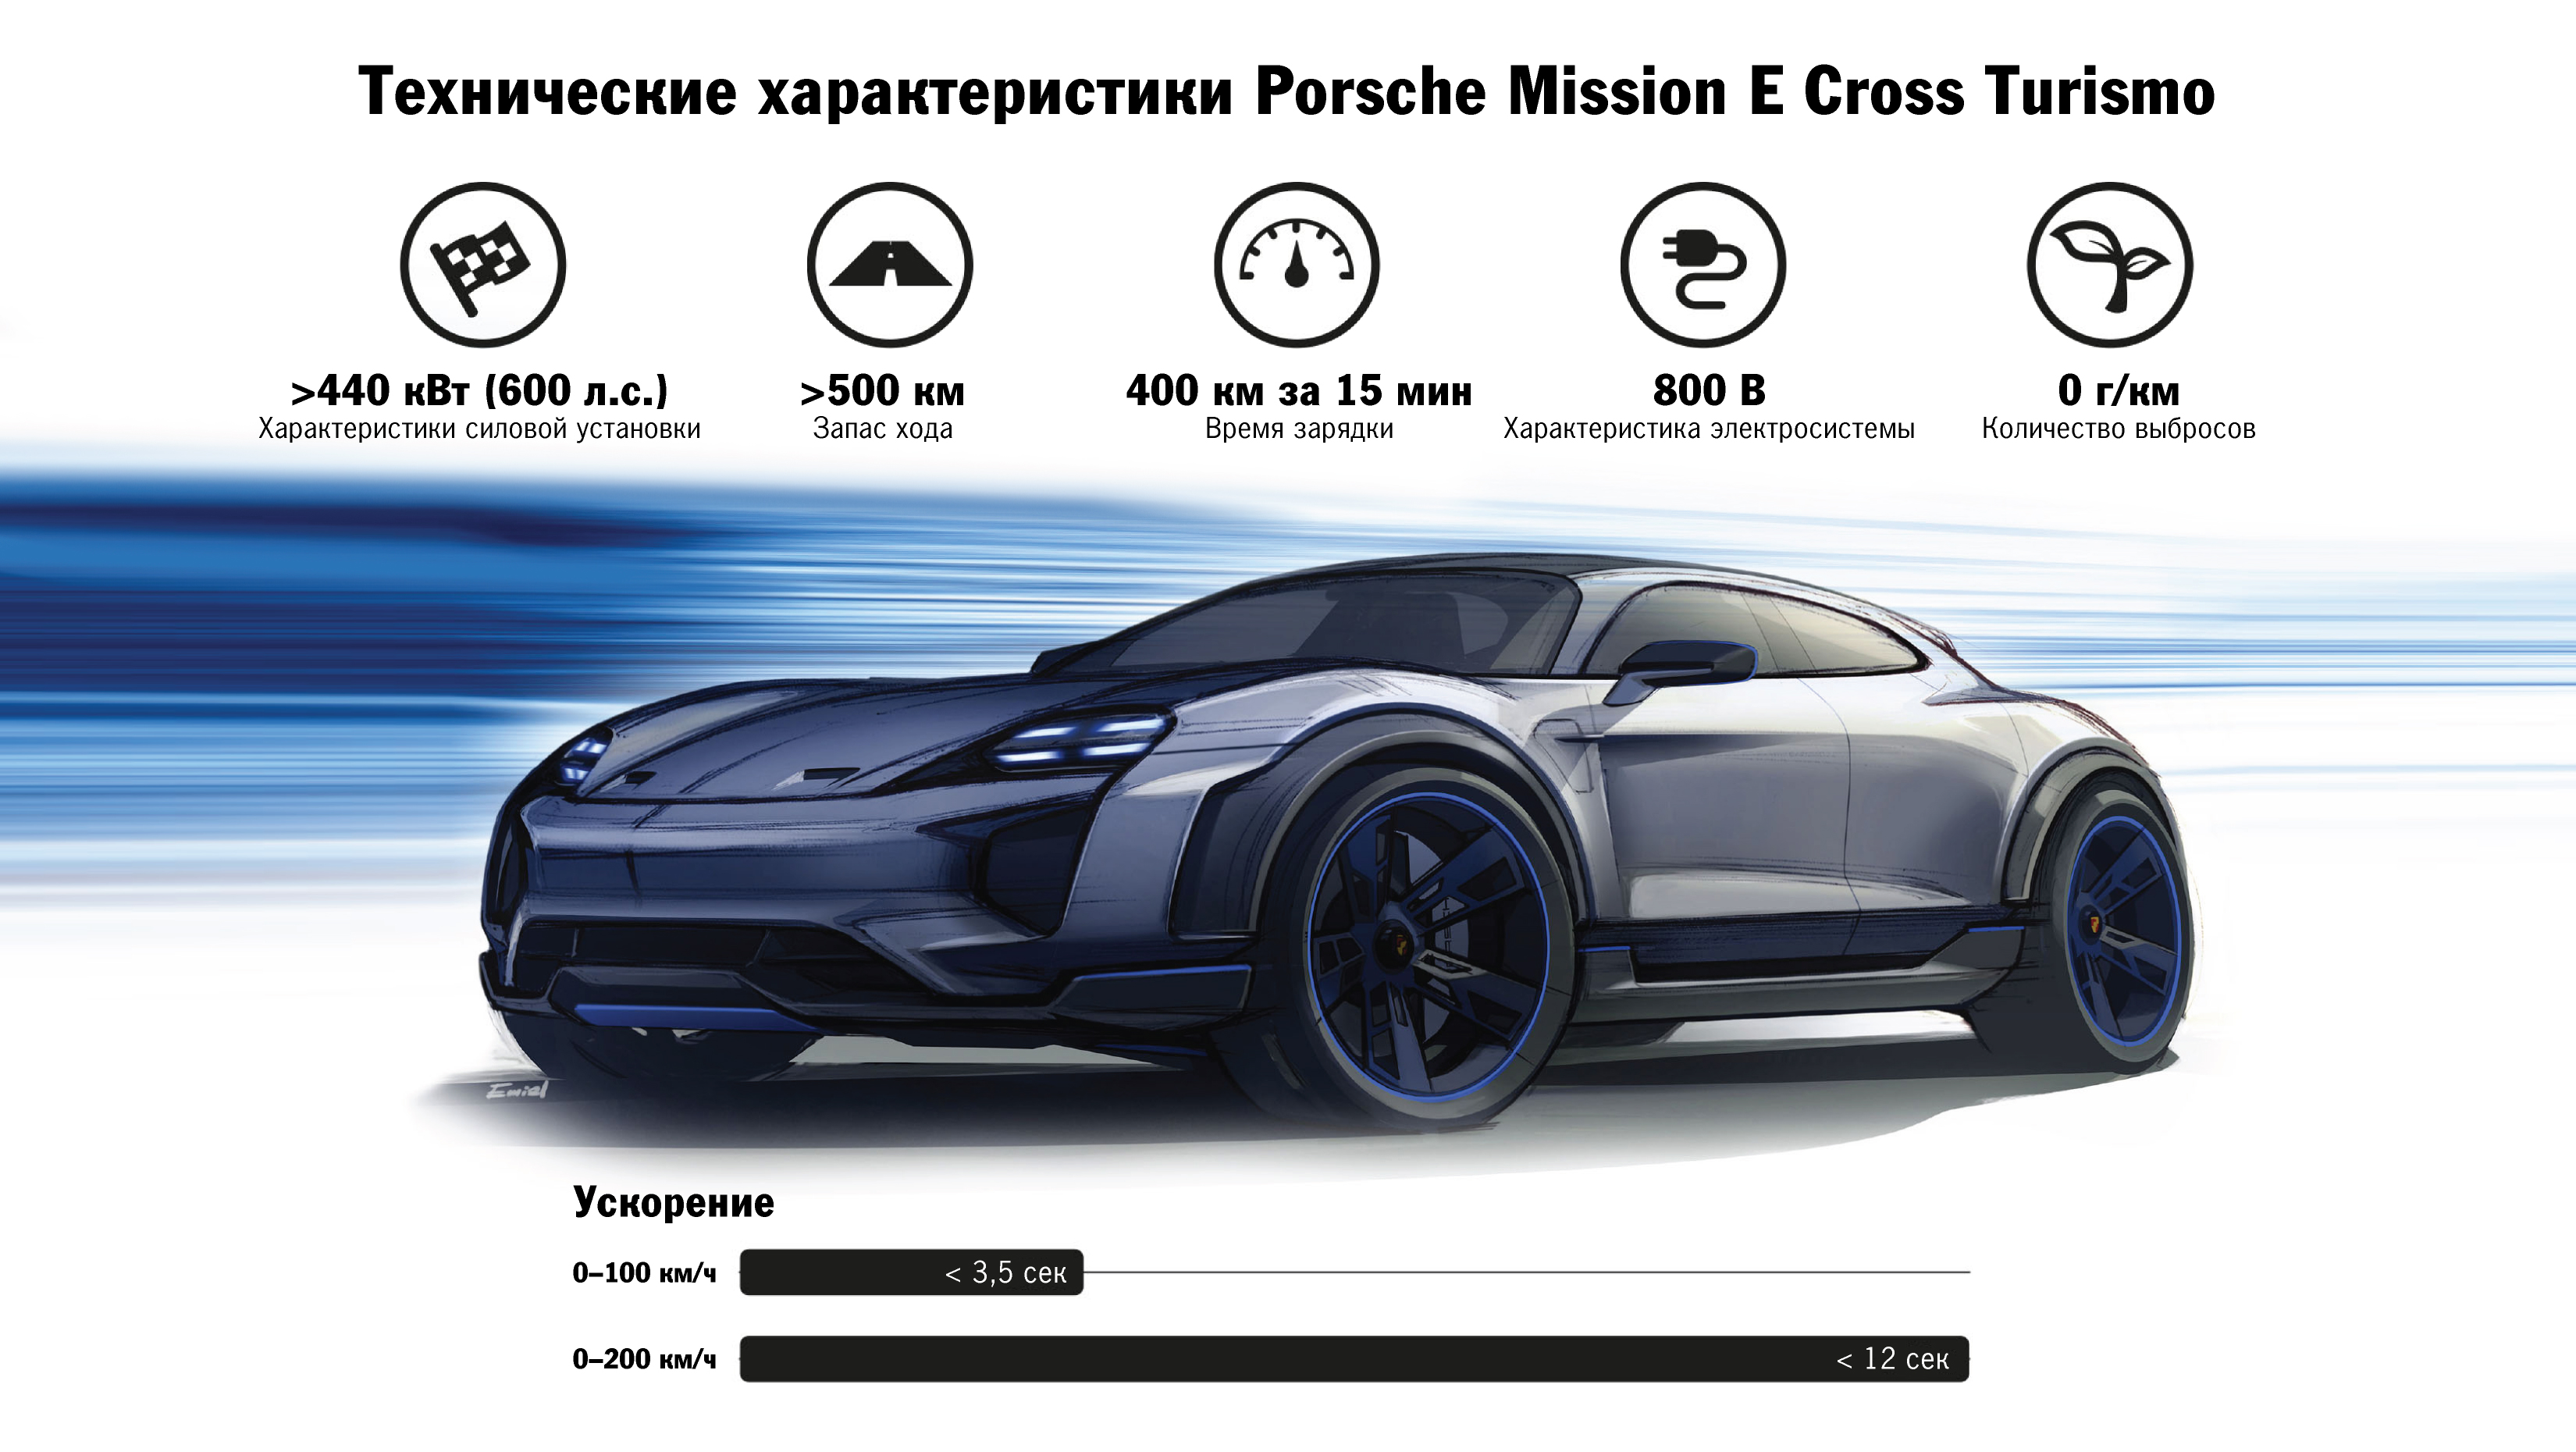 Инфографика Mission E Cross Turismo, Калифорния, 2018, Porsche AG